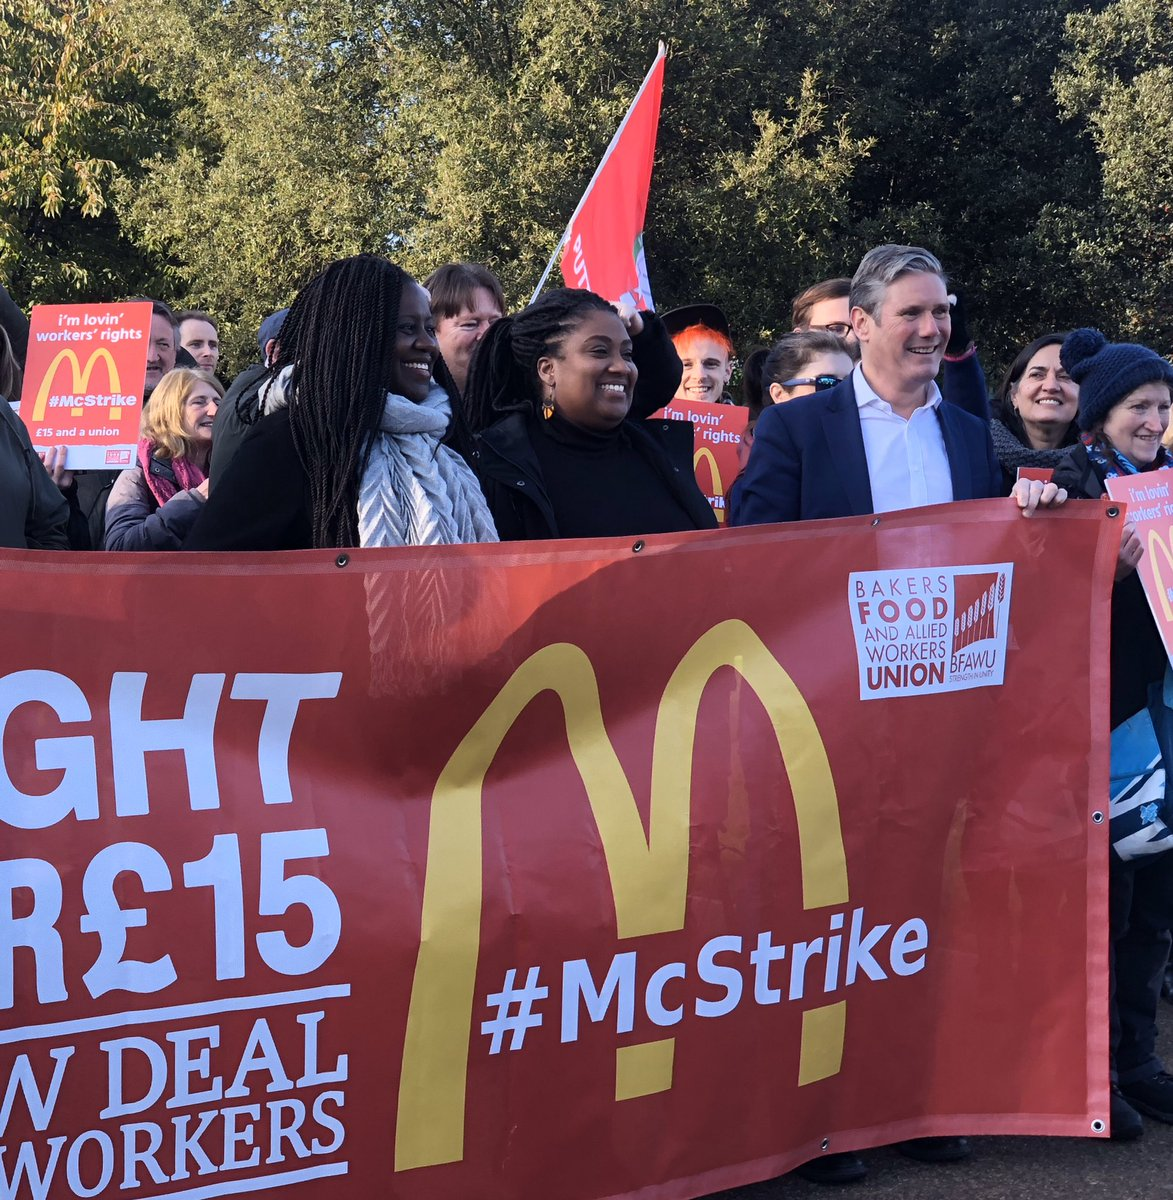 Proud to stand in solidarity with McDonald's workers in Wandsworth. They are standing up to corporate injustice, low pay and the exploitation of workers. Please support them. #McStrike